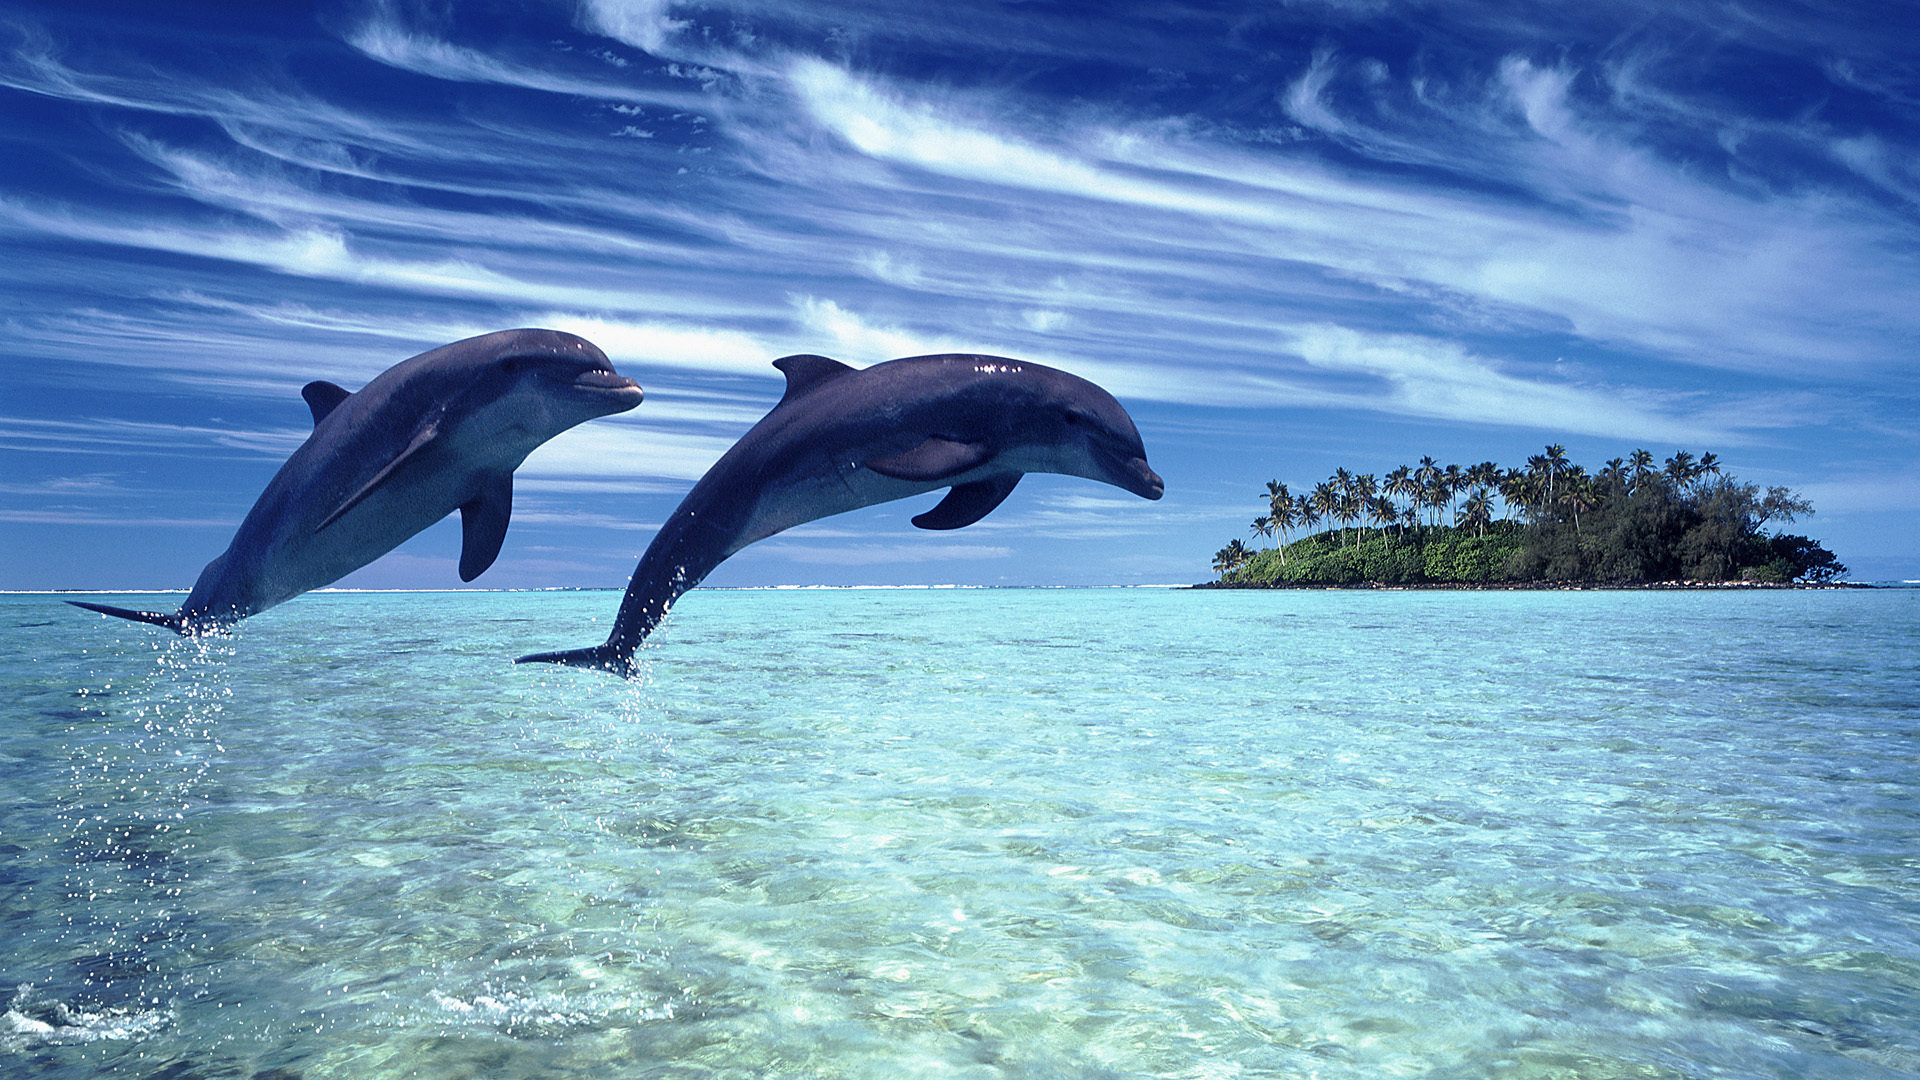 Free download Dolphin wallpaper ID:248403 hd 1920x1080 for desktop